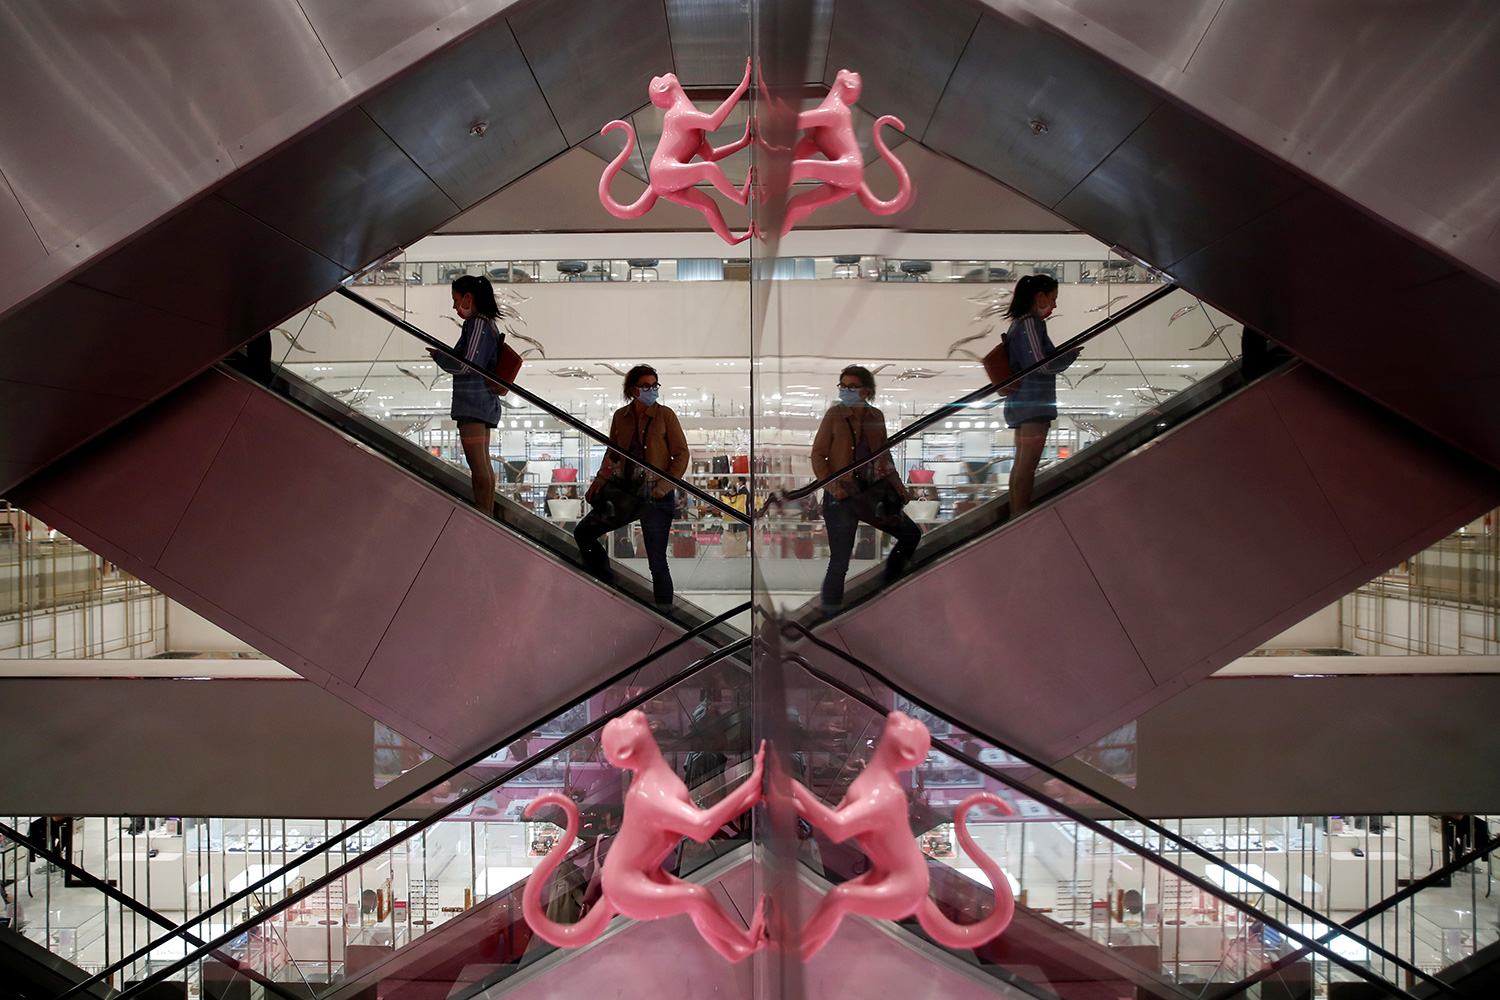 Customers wearing facemasks are reflected in a mirror as they stand on an escalator inside the department store Le Printemps Haussmann in Paris, France, amid the coronavirus pandemic on May 28, 2020. The photo shows people on an escalator with the photo showing mirror images on the left and right of the frame. REUTERS/Gonzalo Fuentes